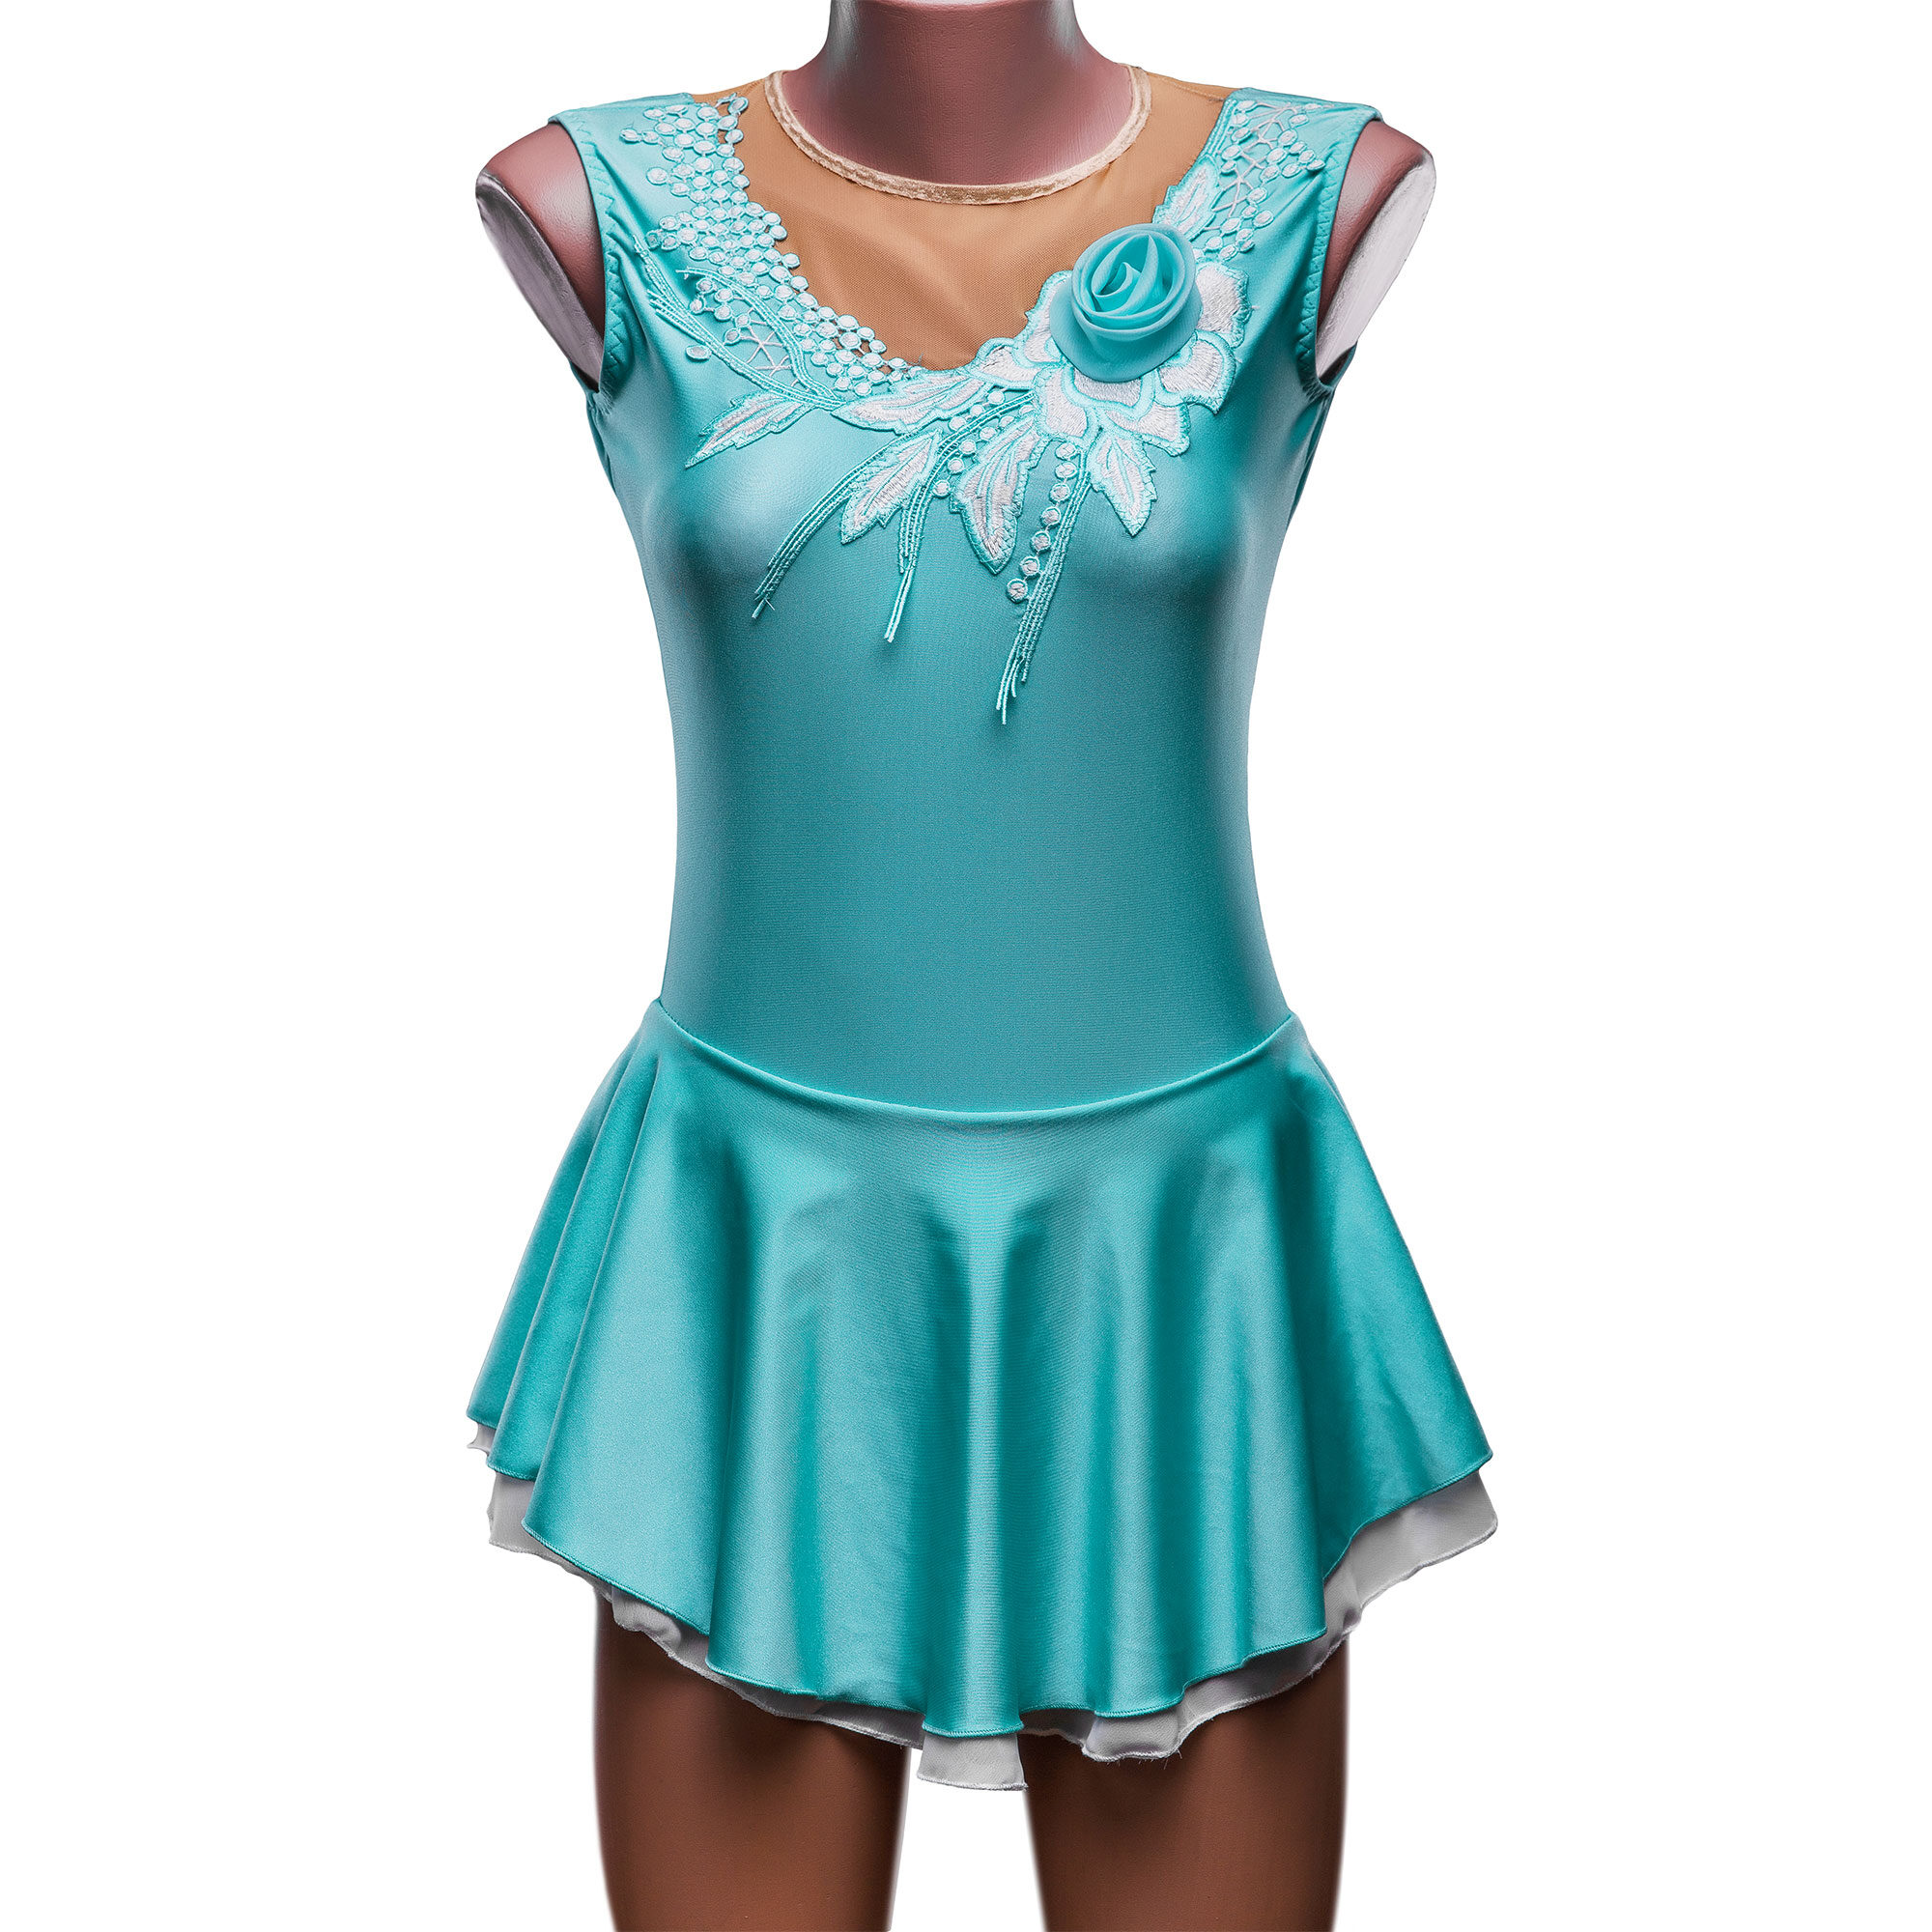 A gentle Ice Figure Skating Leotard № 185 could be sewn as Rhythmic Gymnastics Dress, Ice Figure Skating Dress, Acrobatic Gymnastics Costume, Baton Twirling Suit or Dance Leotard. Blue leotard is decorated with lace and a charming rosebud